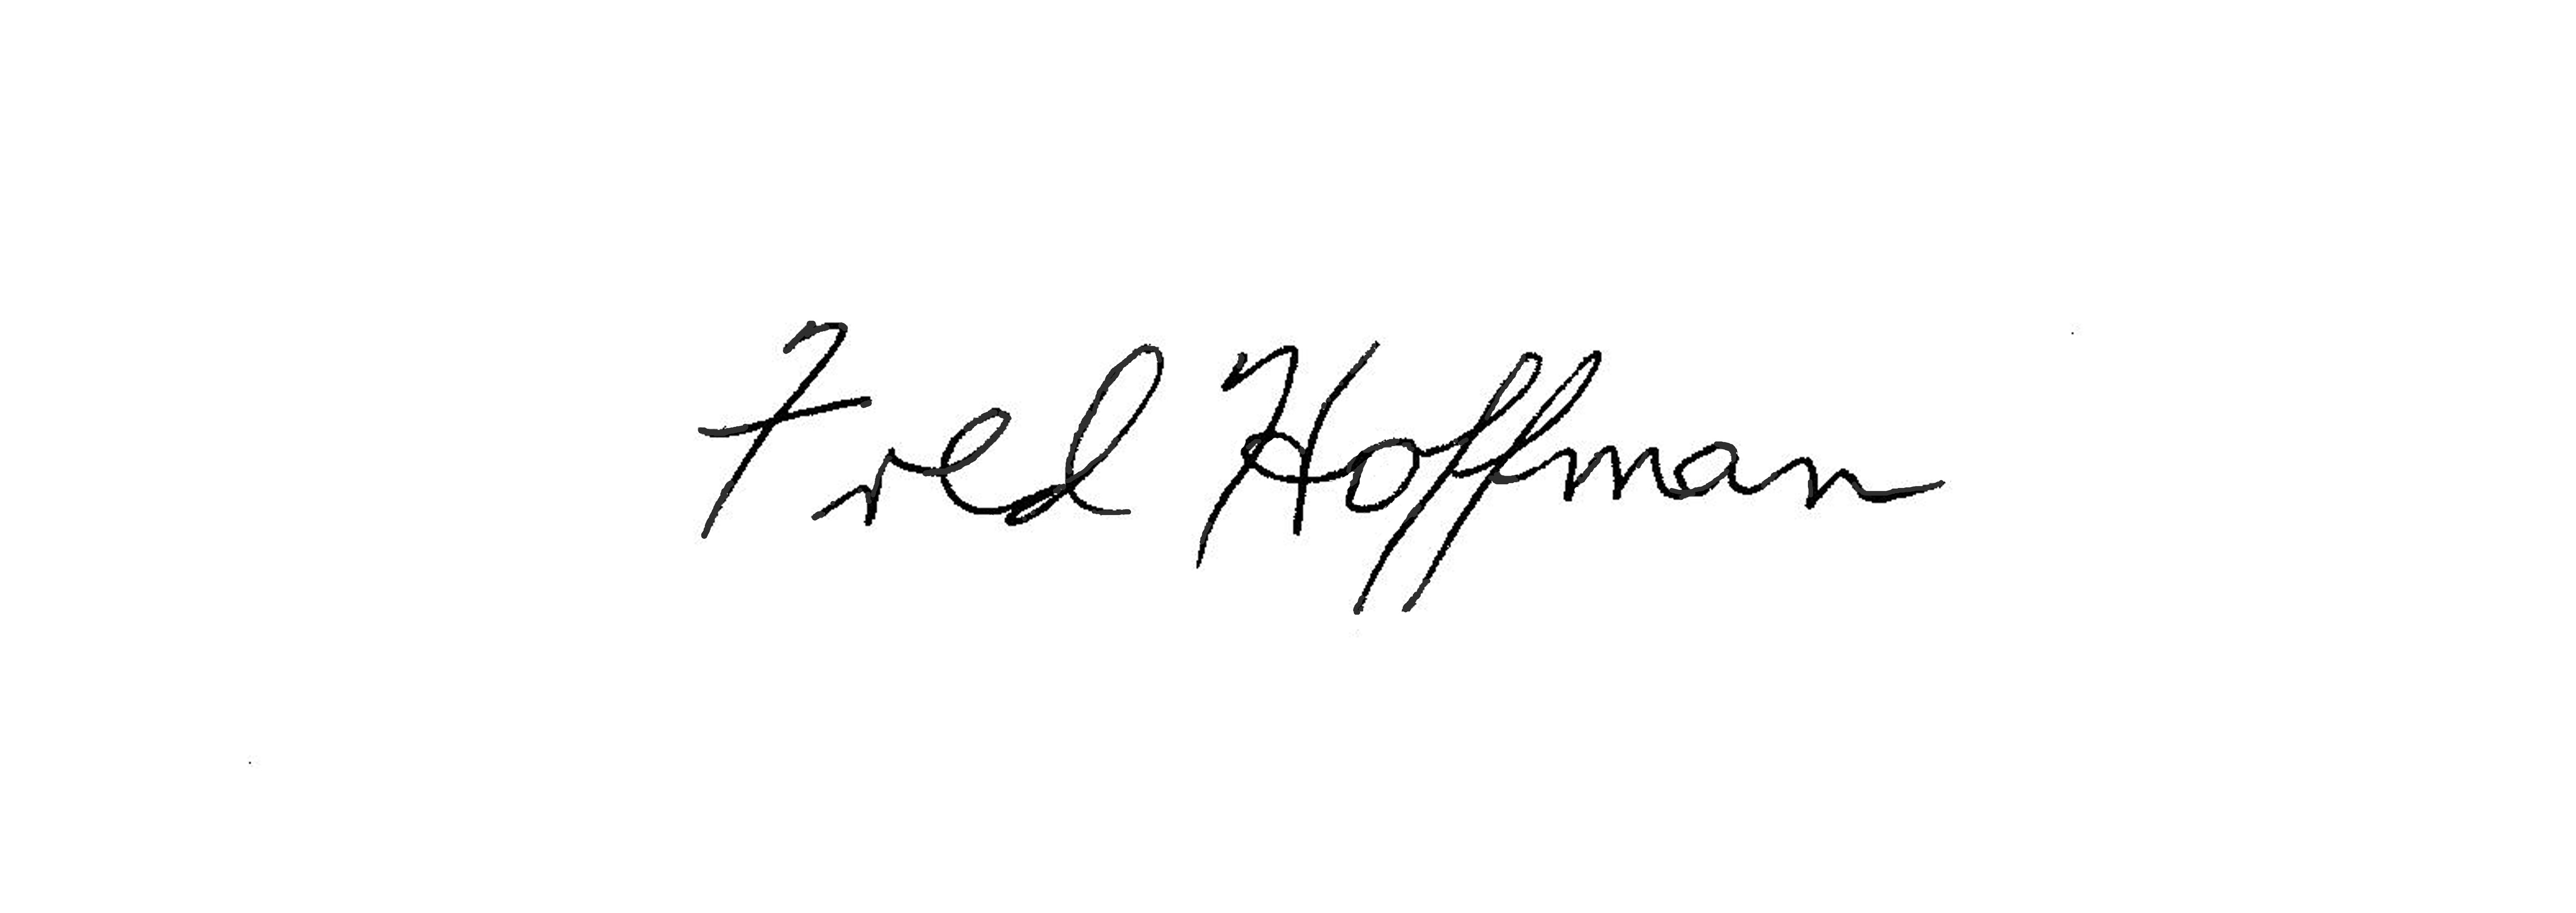 Fred Hoffman Signature